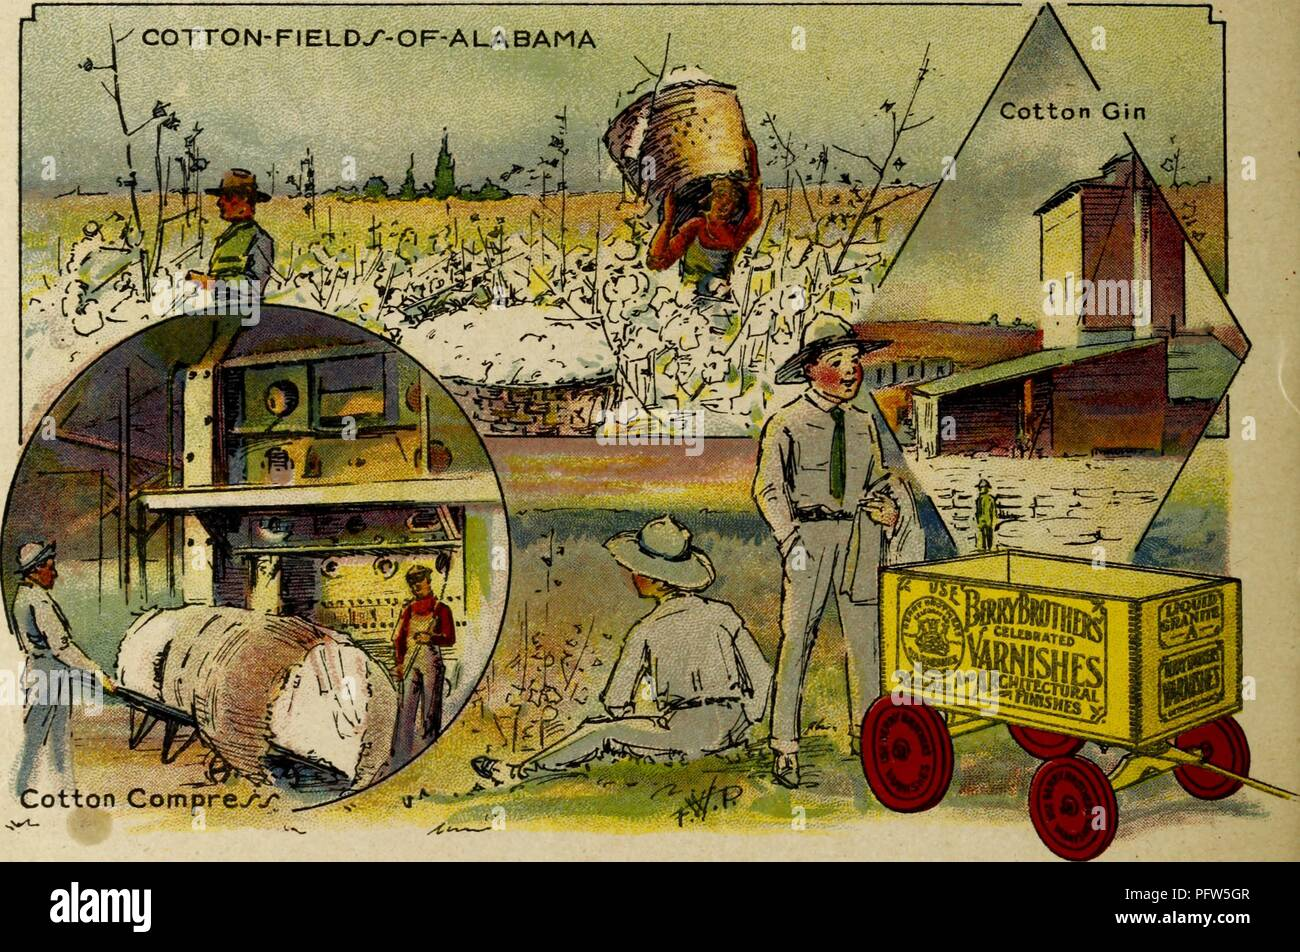 Color illustration depicting several images of Alabama's Cotton Fields, including a 'Cotton Gin' and a 'Cotton Compress, ' along with the eponymous characters, wearing sun hats and sitting and standing near a wagon advertising 'Berry Brothers Varnishes, ' from the children's volume 'Seeing America First: with the Berry Brothers, ' authored by Eleanor Colby, and illustrated by FW Pfeiffer, 1917. Courtesy Internet Archive. () Stock Photo